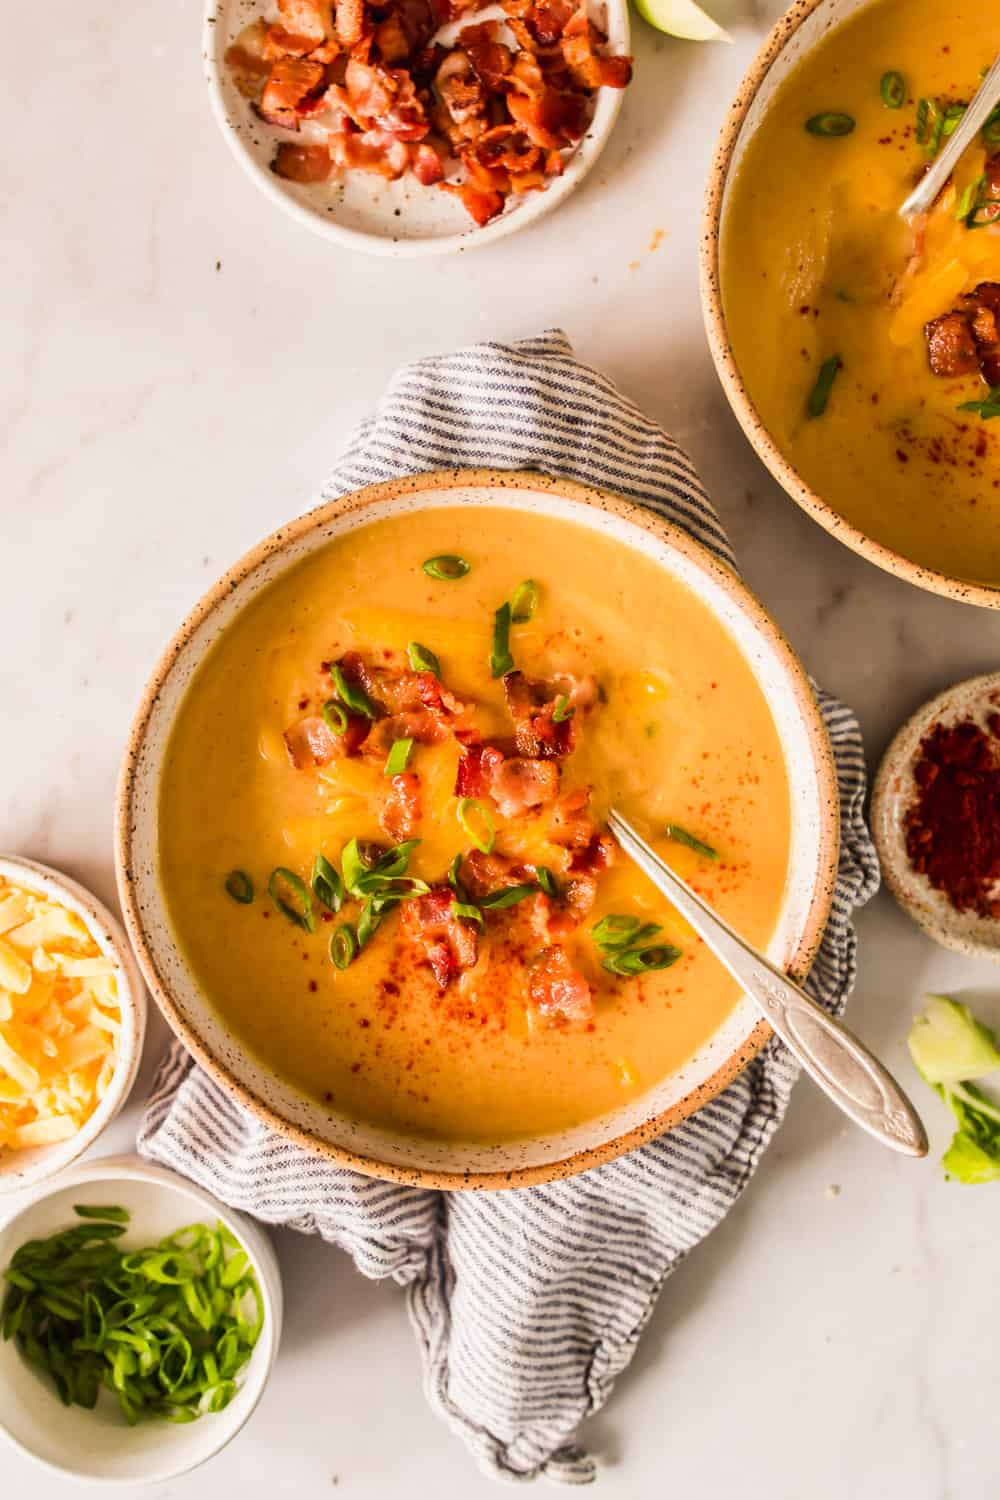 beige bowl filled with orange soup topped with bacon, scallions, and paprika